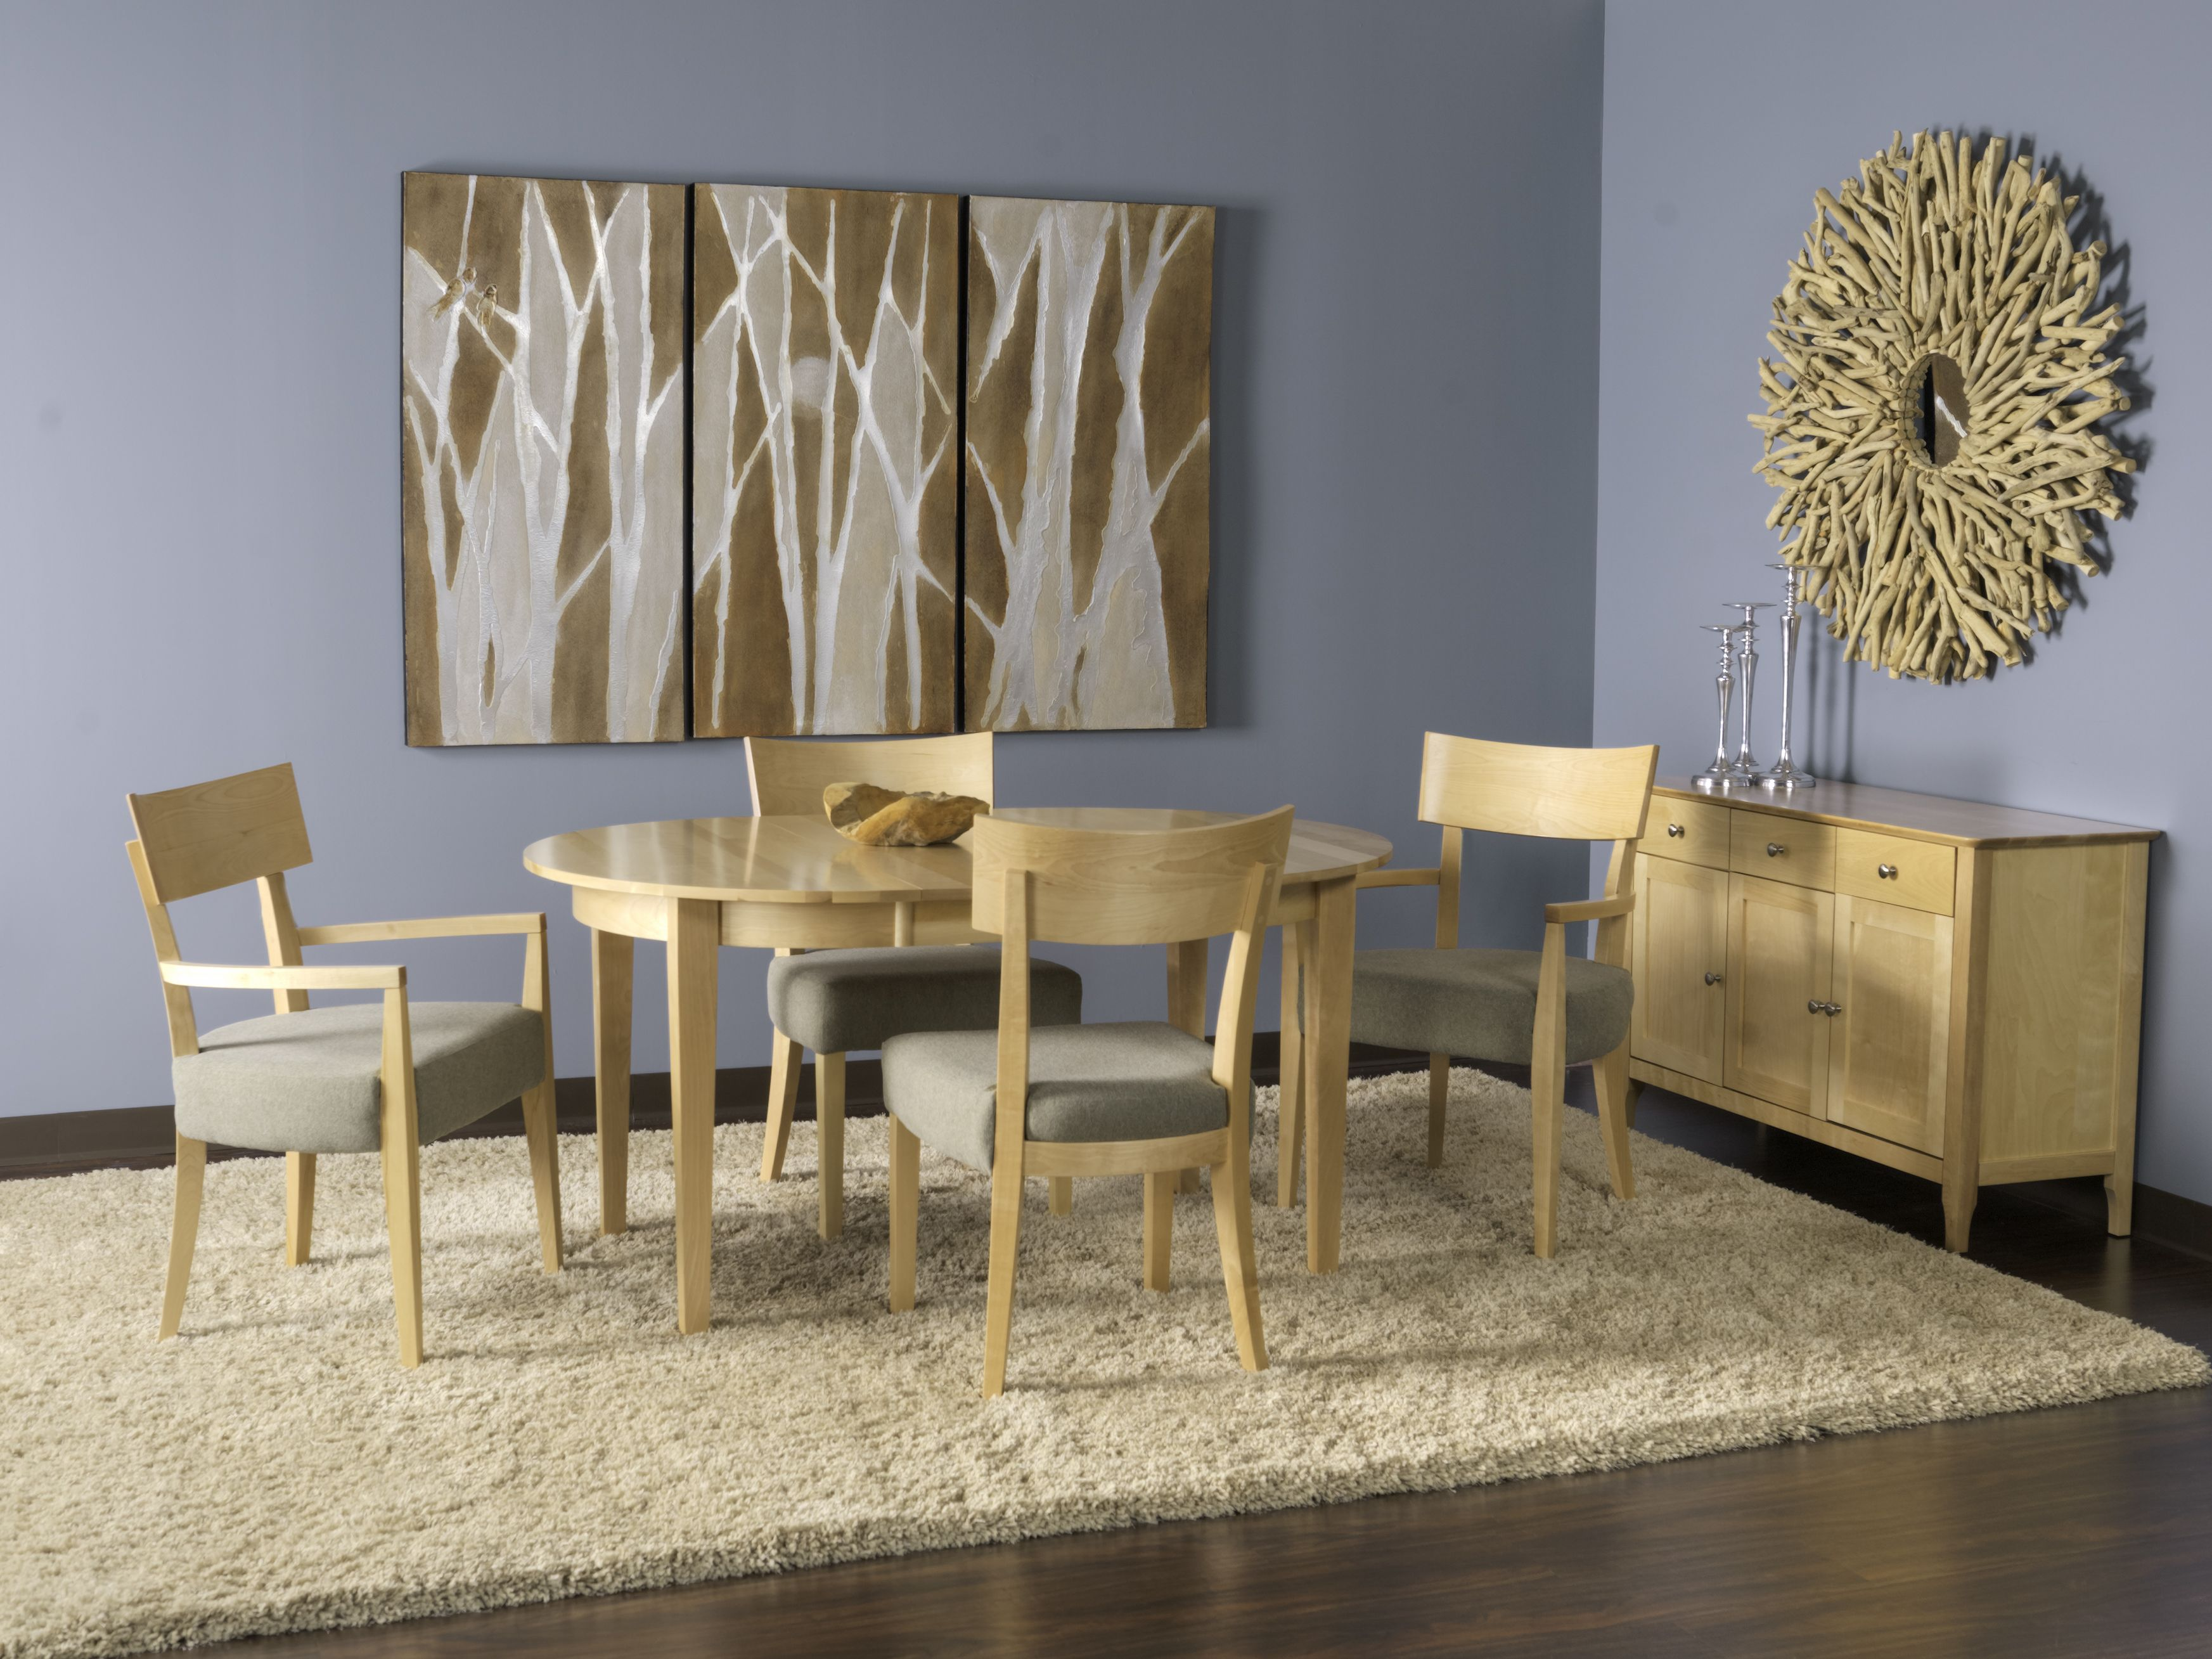 dining room set from uptown modern classics and is available in our plymouth and lakeville showrooms - Uptown Modern Furniture Toronto